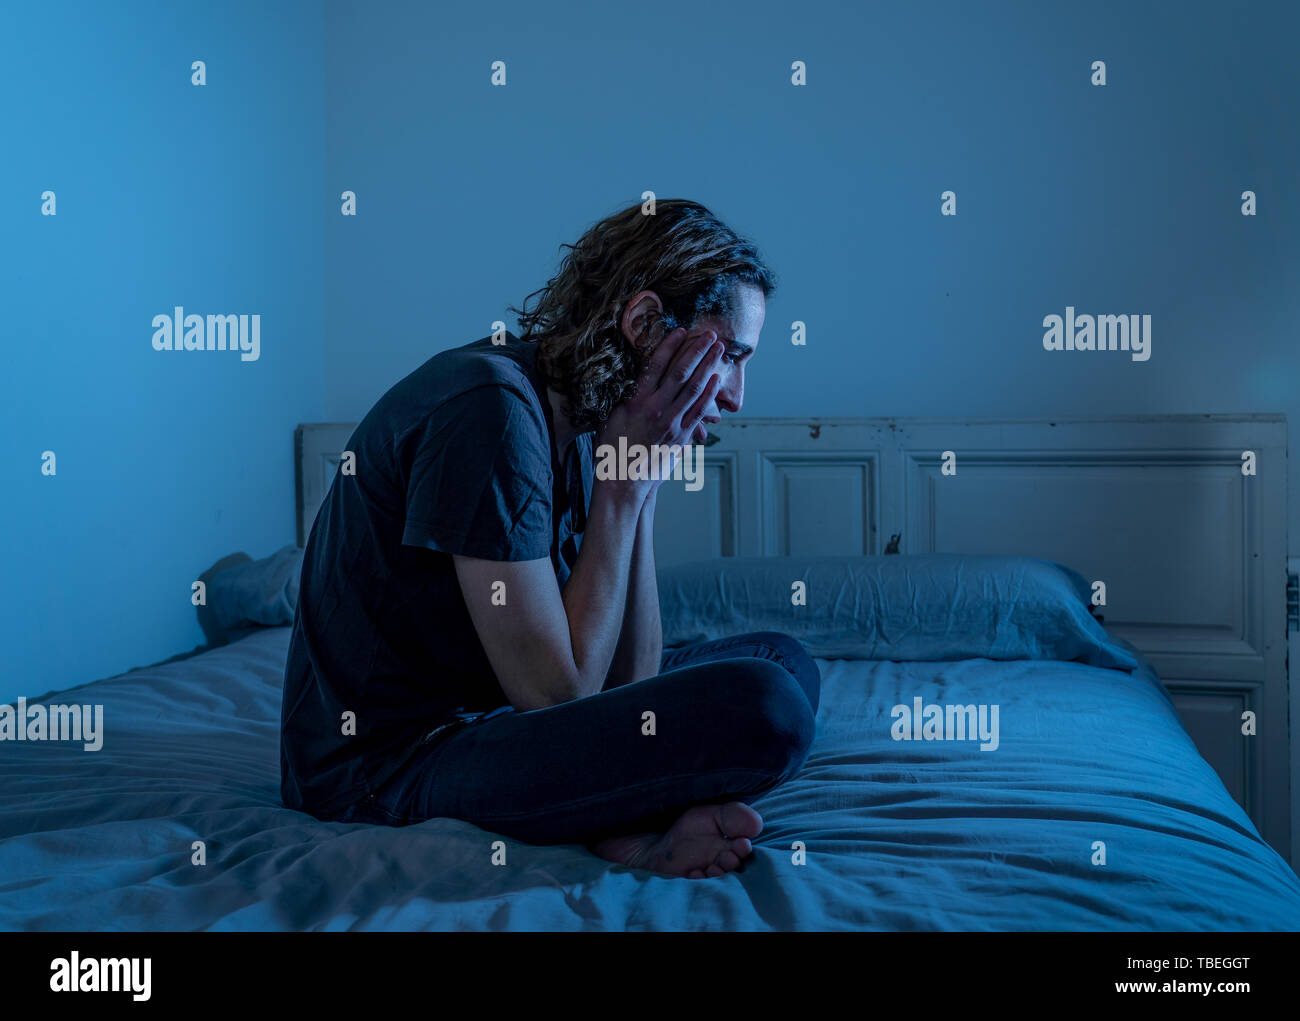 Devastated millennial man crying sad feeling hurt and hopeless suffering Depression. Depressed teenager victim of bullying or abuse sitting on bed alo Stock Photo